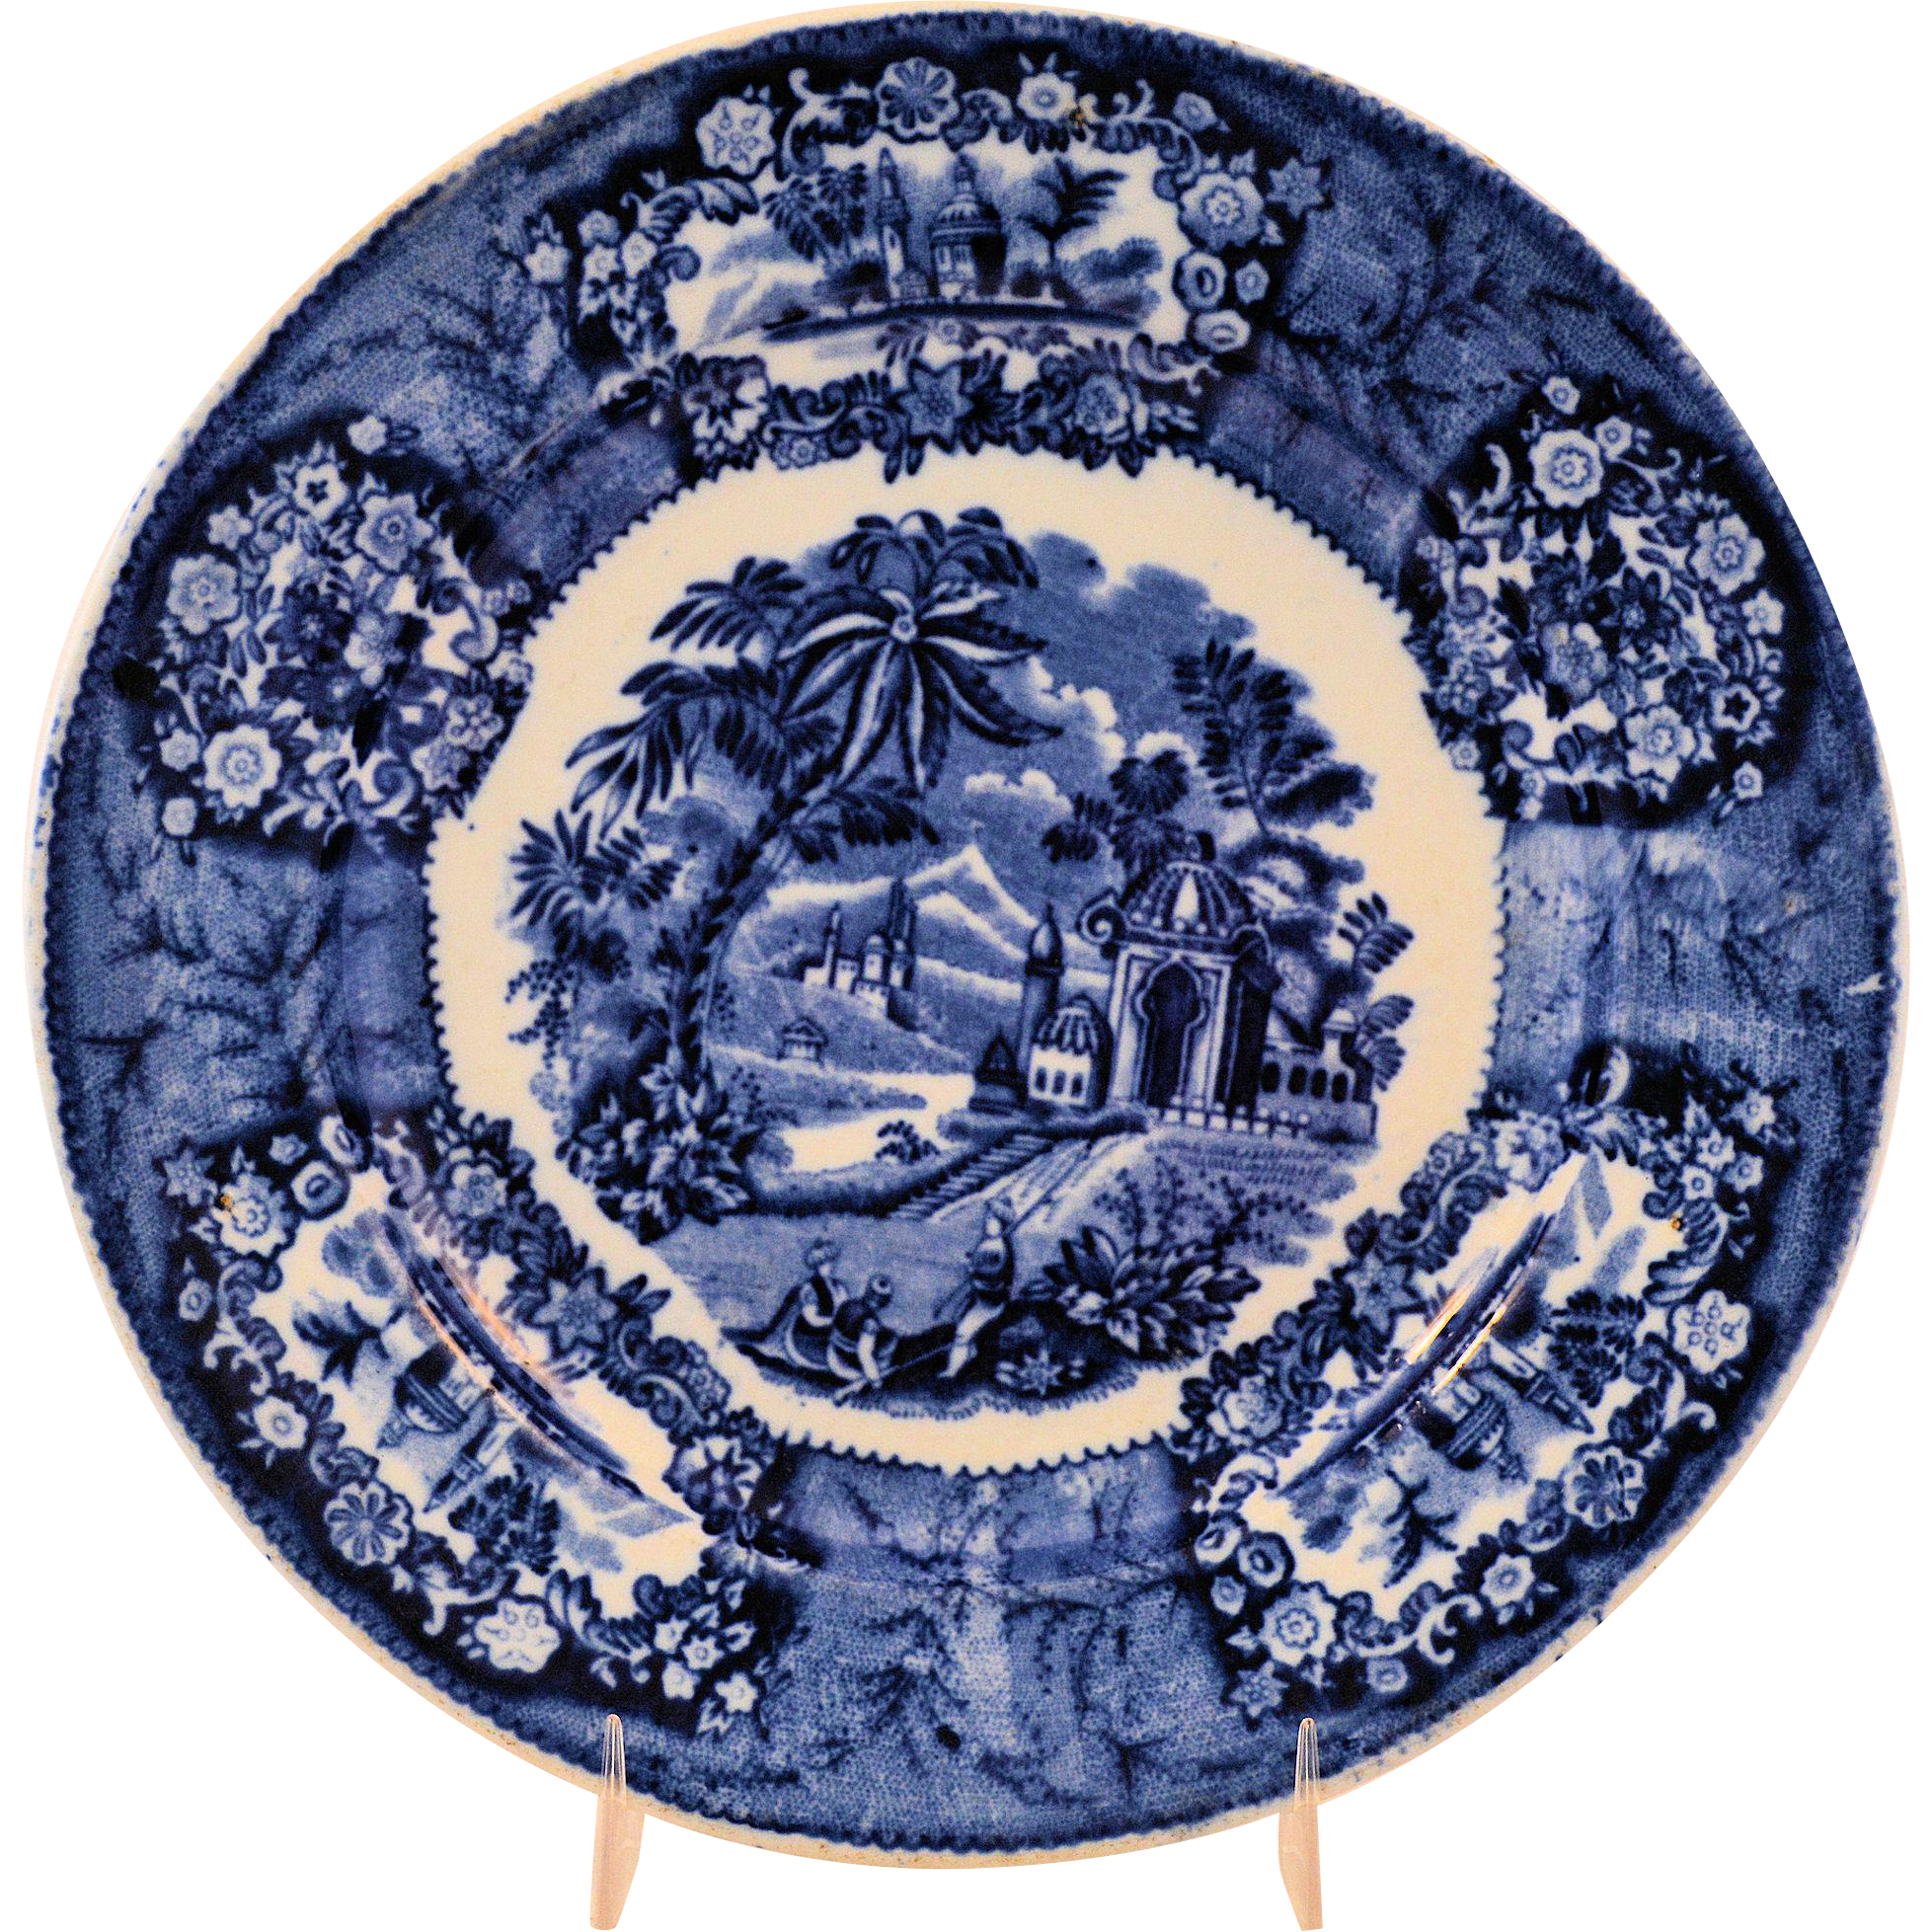 Staffordshire Flow Blue Transferware Plate Oriental Pattern by Thomas Fell Antique circa 1817-30